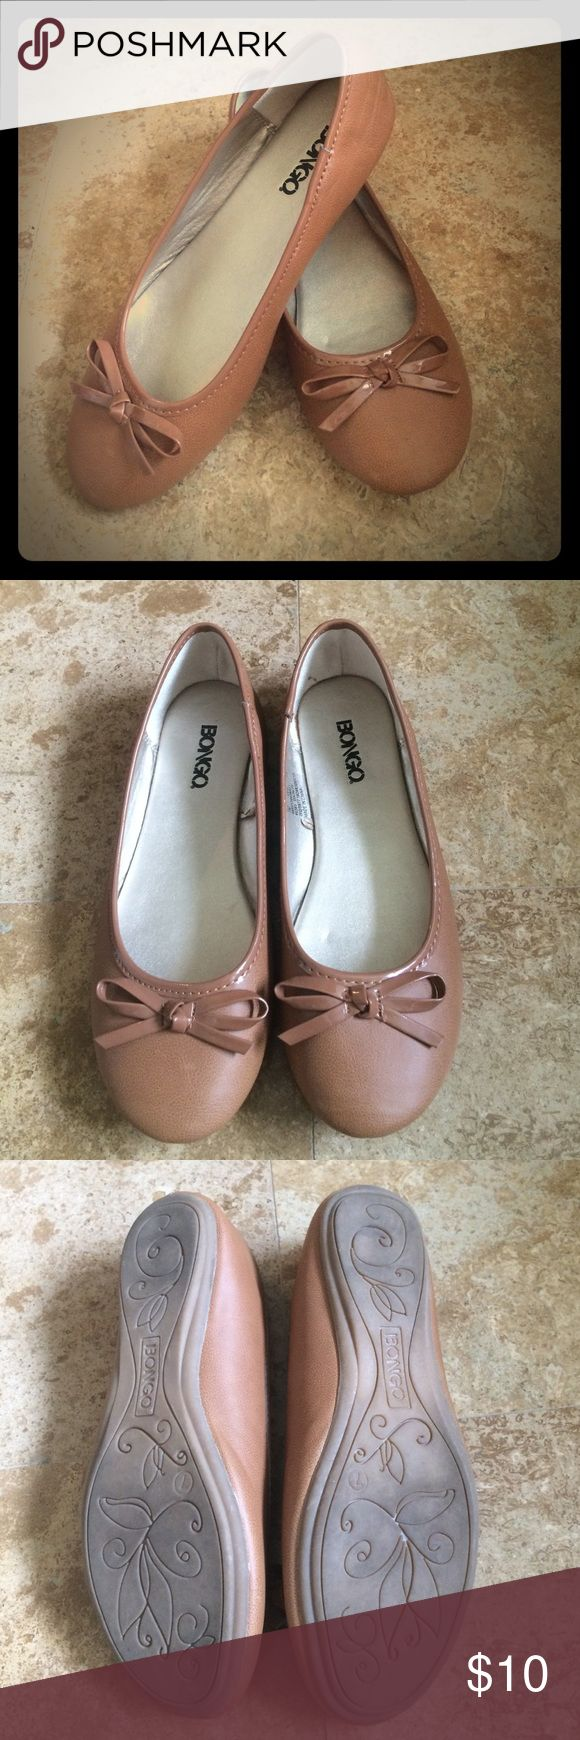 BONGO camel ballet flats Excellent condition. Worn once, too small for my foot. Size 7 BONGO Shoes Flats & Loafers